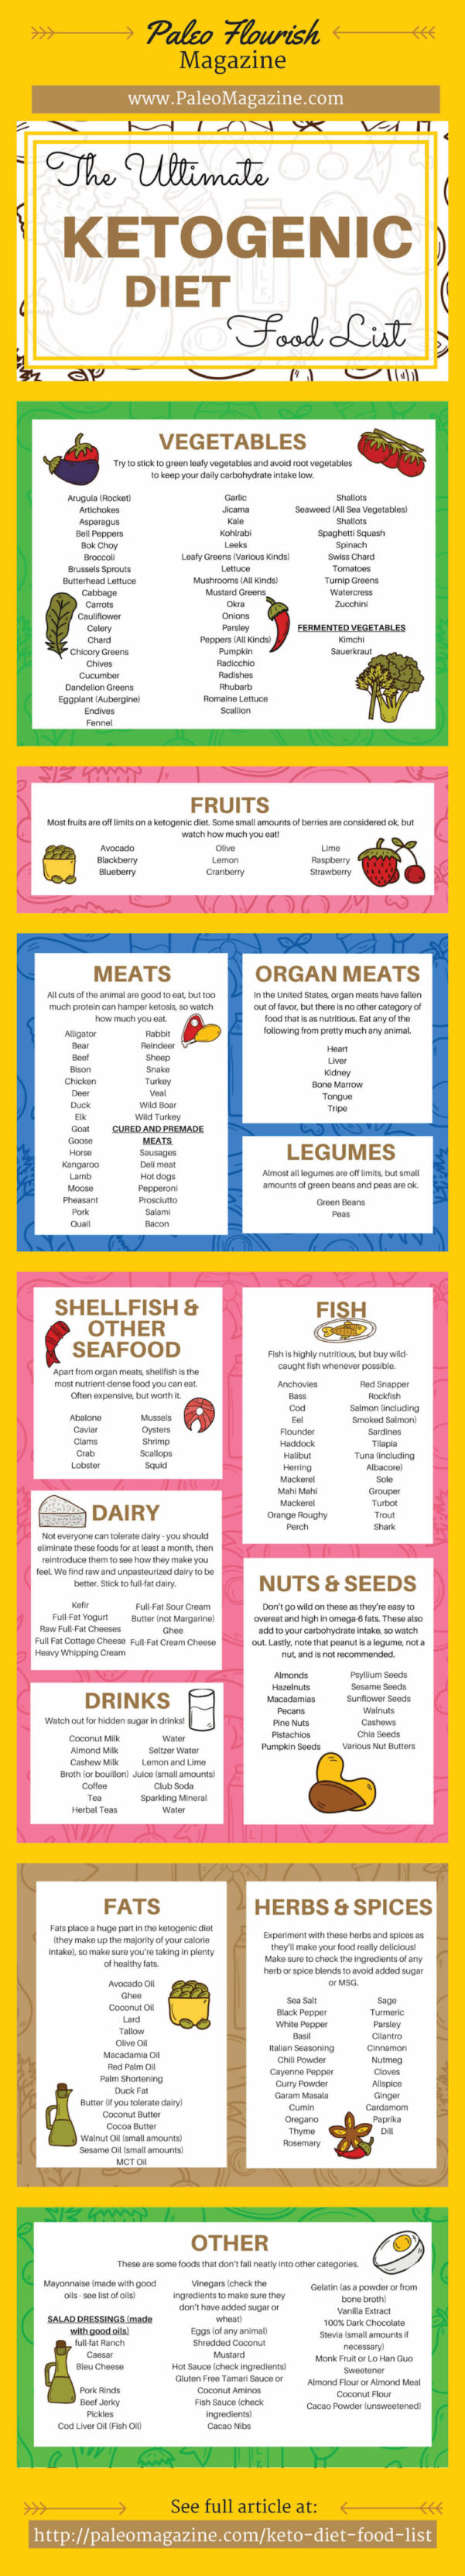 "Keto Food Spreadsheet Within Keto Diet Food List: 221 Keto Diet Foods   Printable ""cheatsheet"""